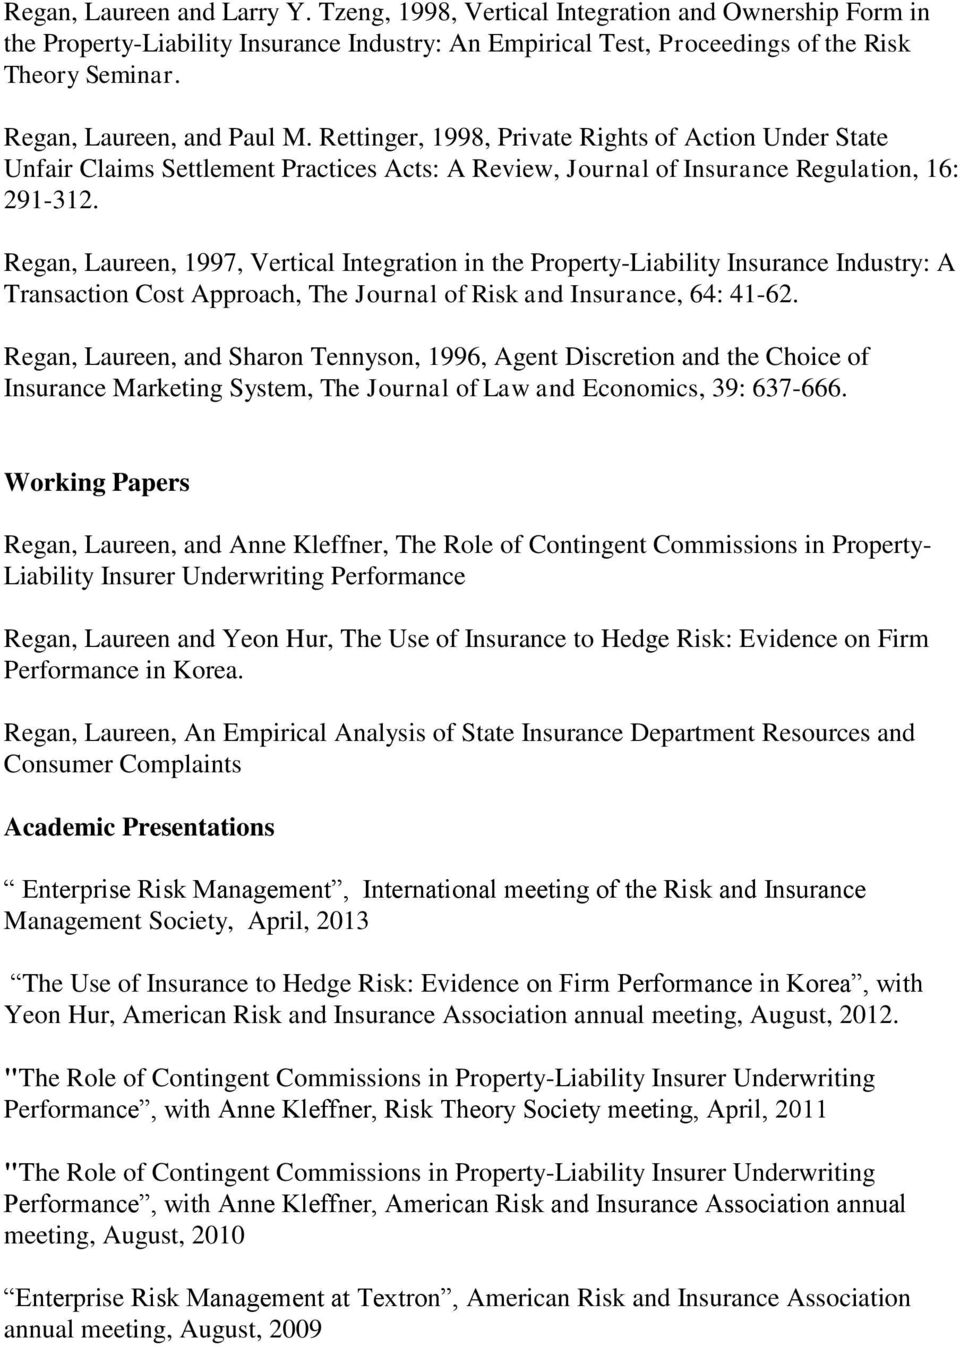 Regan, Laureen, 1997, Vertical Integration in the Property-Liability Insurance Industry: A Transaction Cost Approach, The Journal of Risk and Insurance, 64: 41-62.